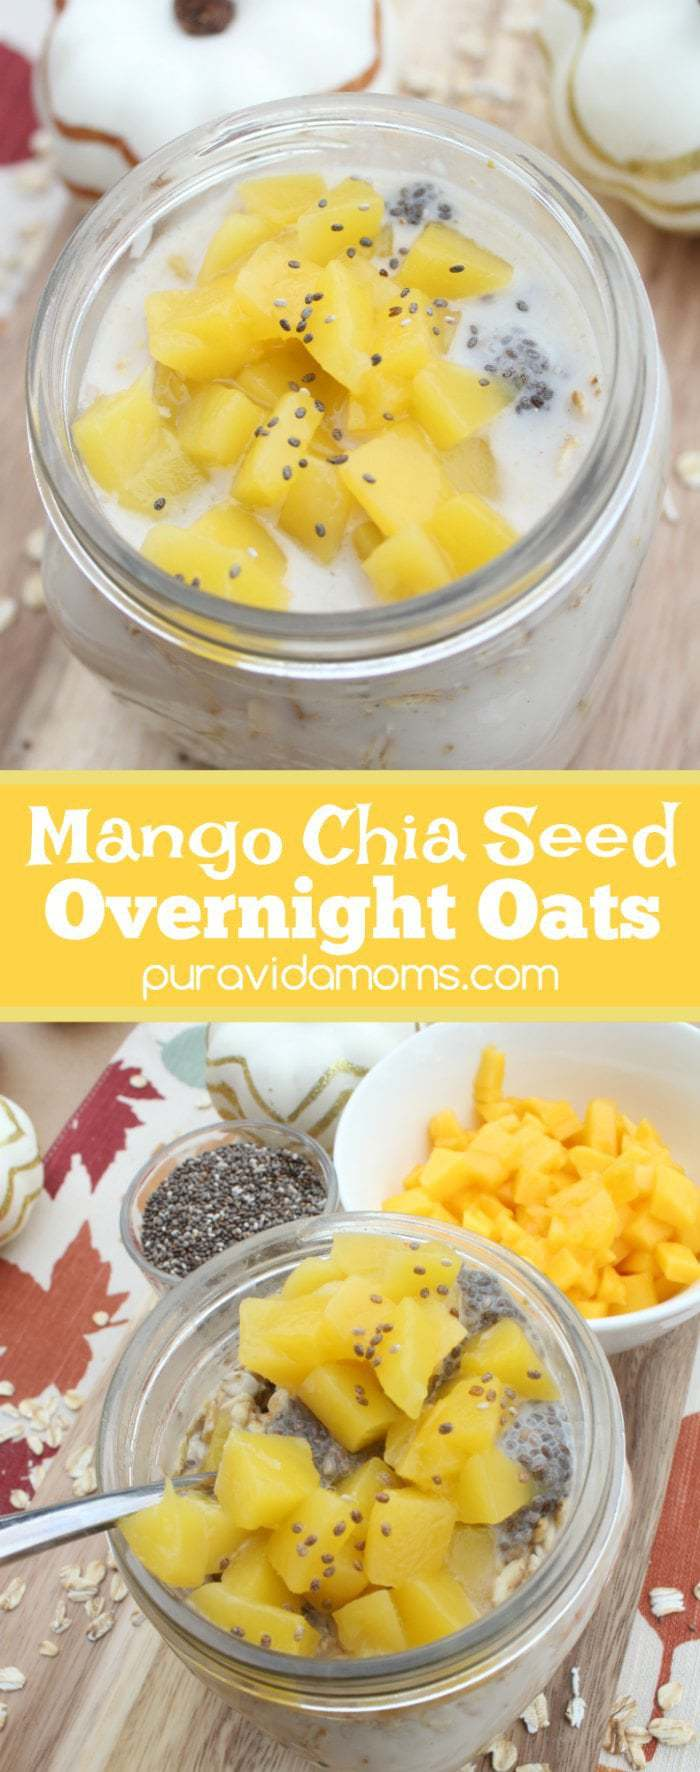 Mango Chia Seed Overnight Oats Recipe